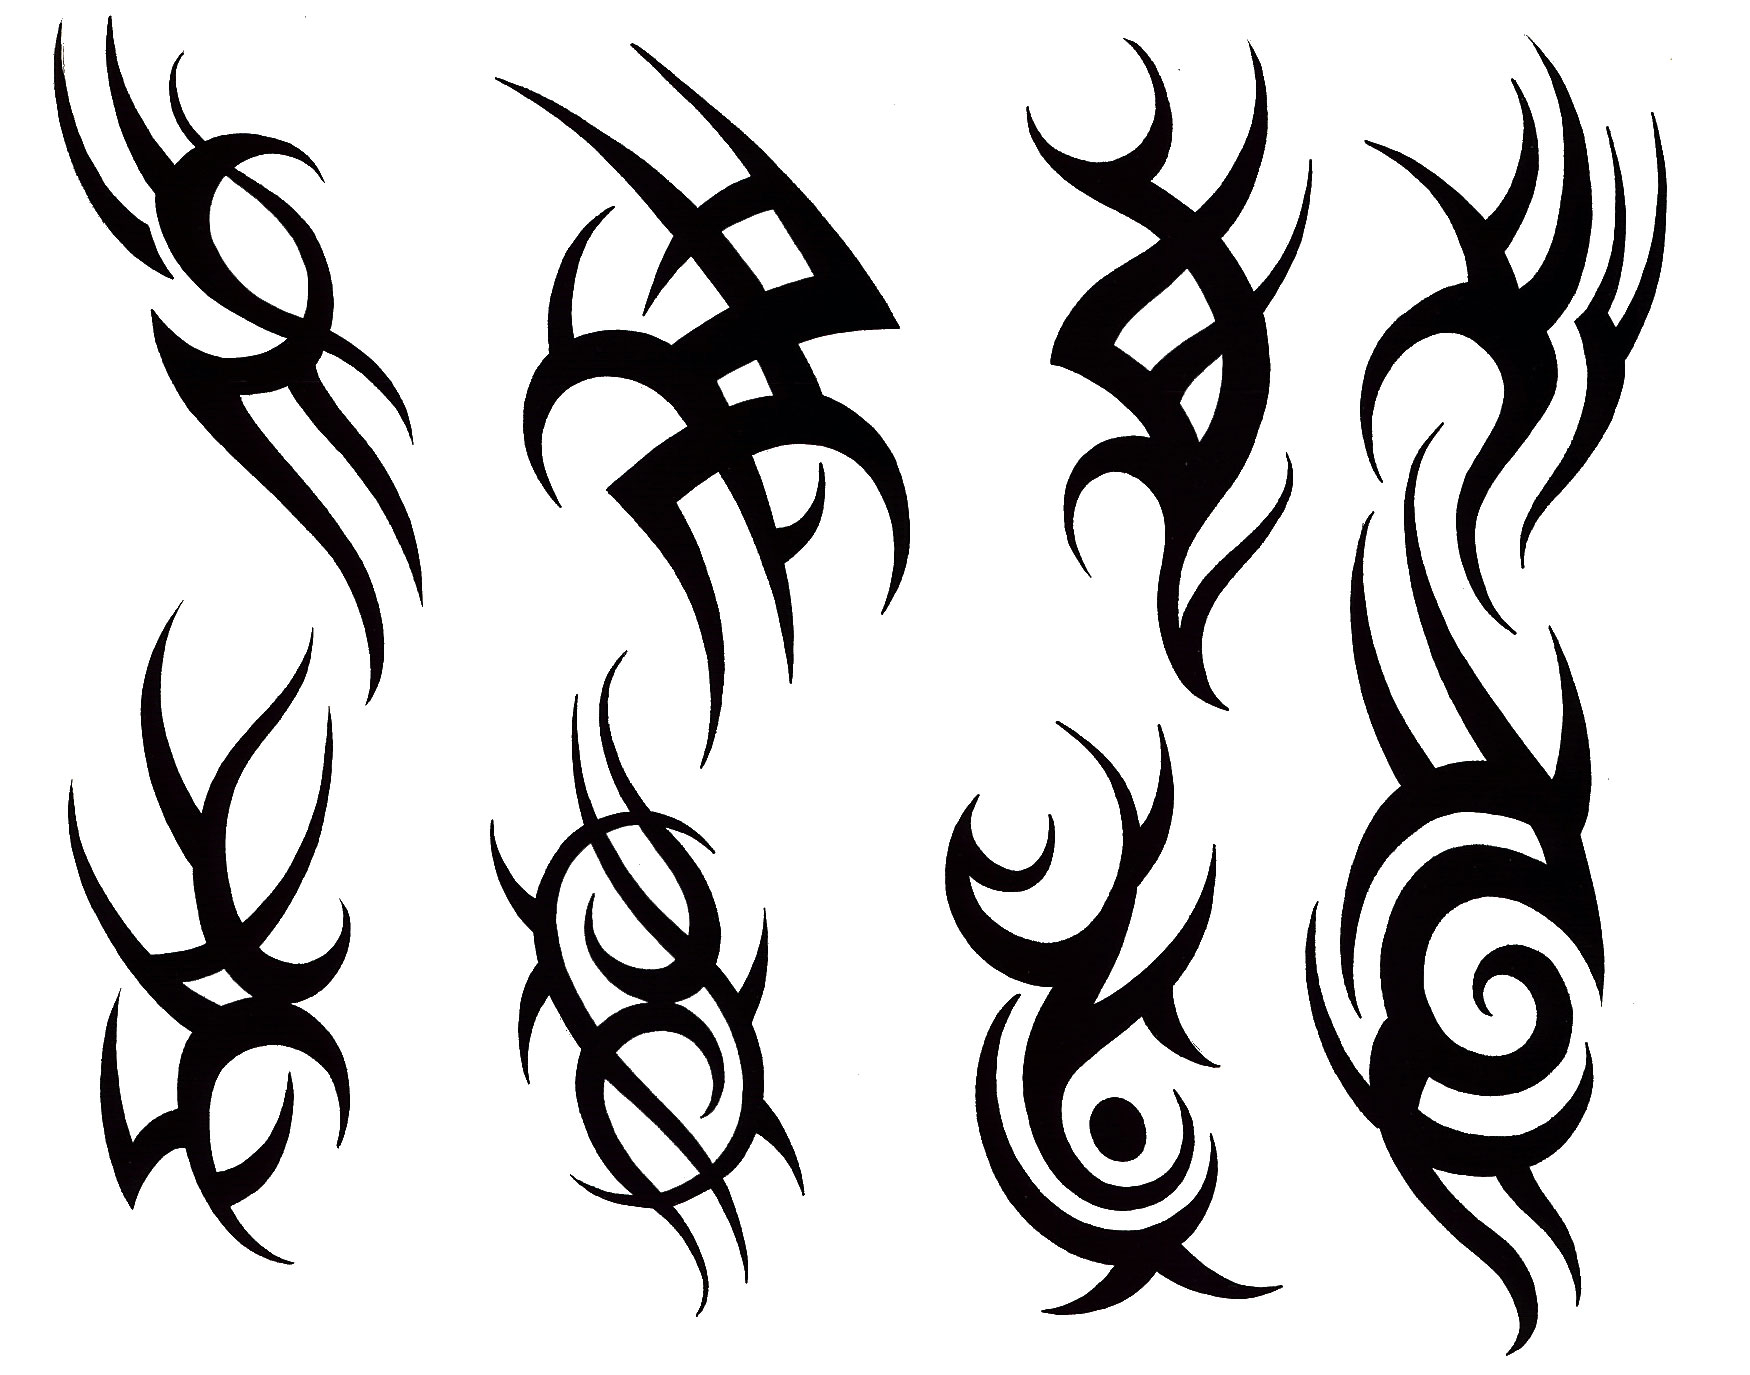 simple tattoo designs to draw for men free download best simple tattoo designs to draw for men. Black Bedroom Furniture Sets. Home Design Ideas